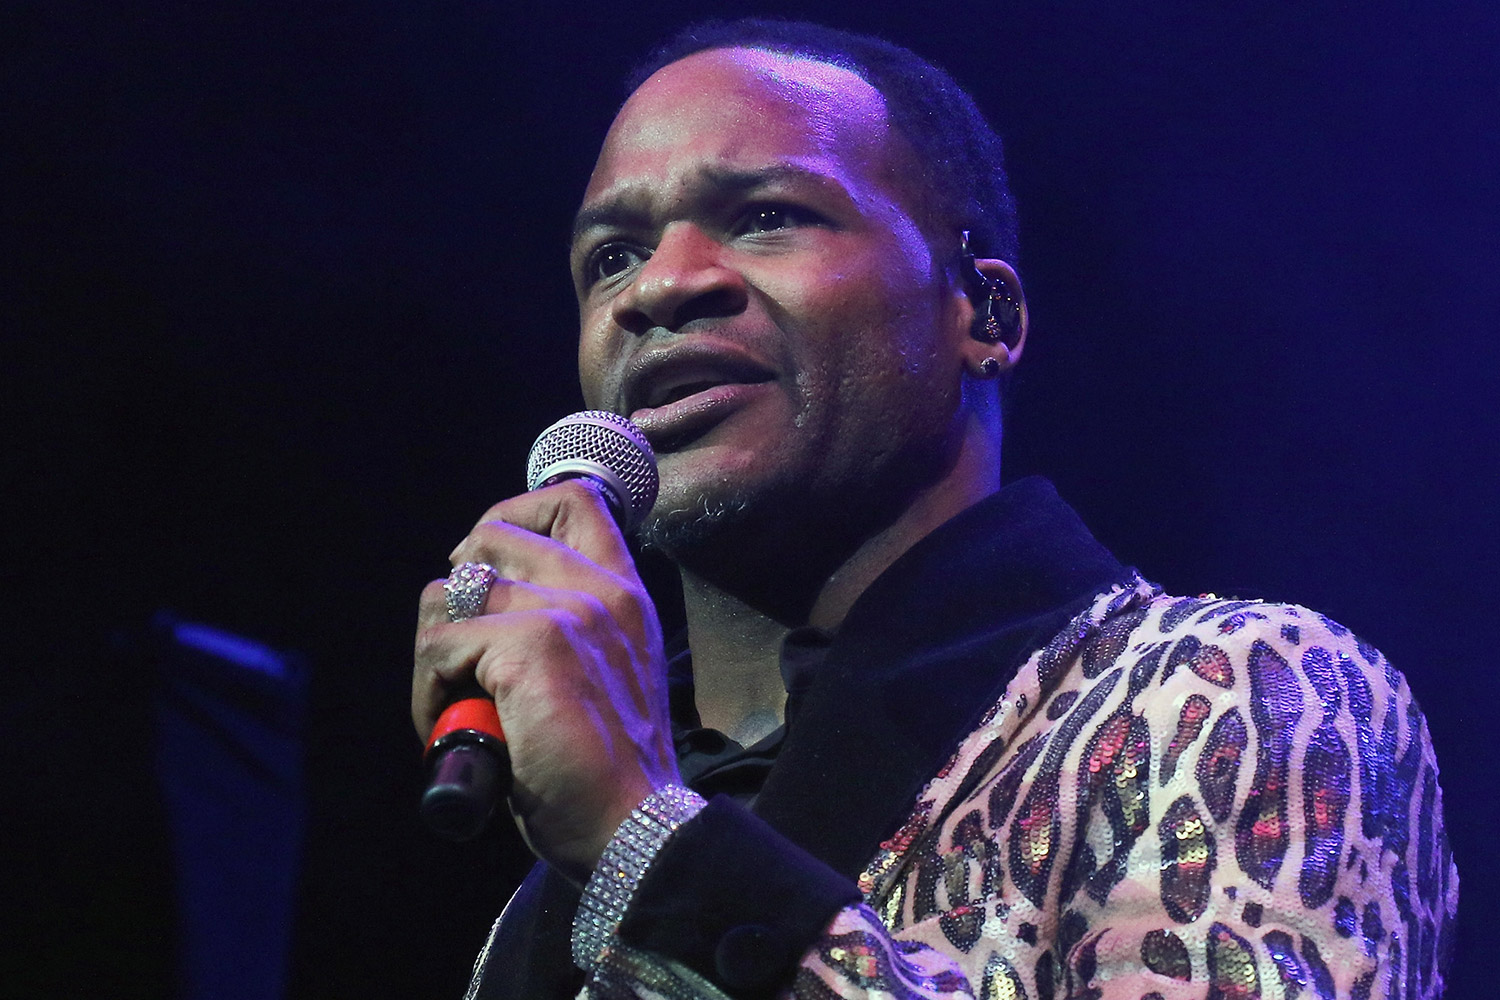 R&B Singer Jaheim Arrested for Animal Cruelty After Starving Several Dogs at New Jersey Home